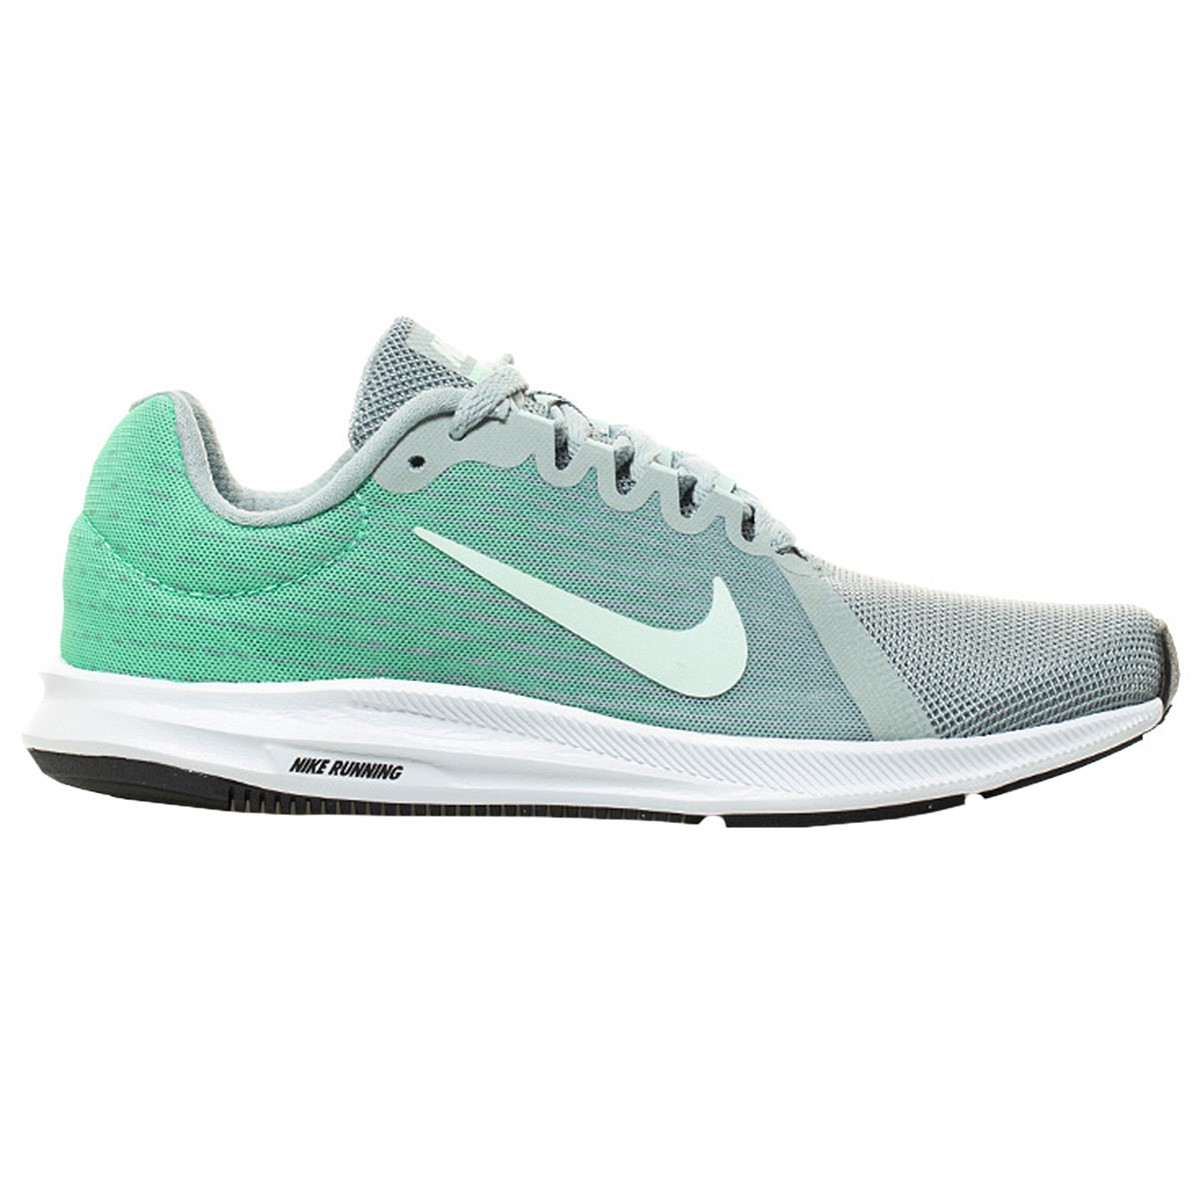 0a698b5d1 Running shoes Nike Downshifter 8 Woman - Sporty shoes